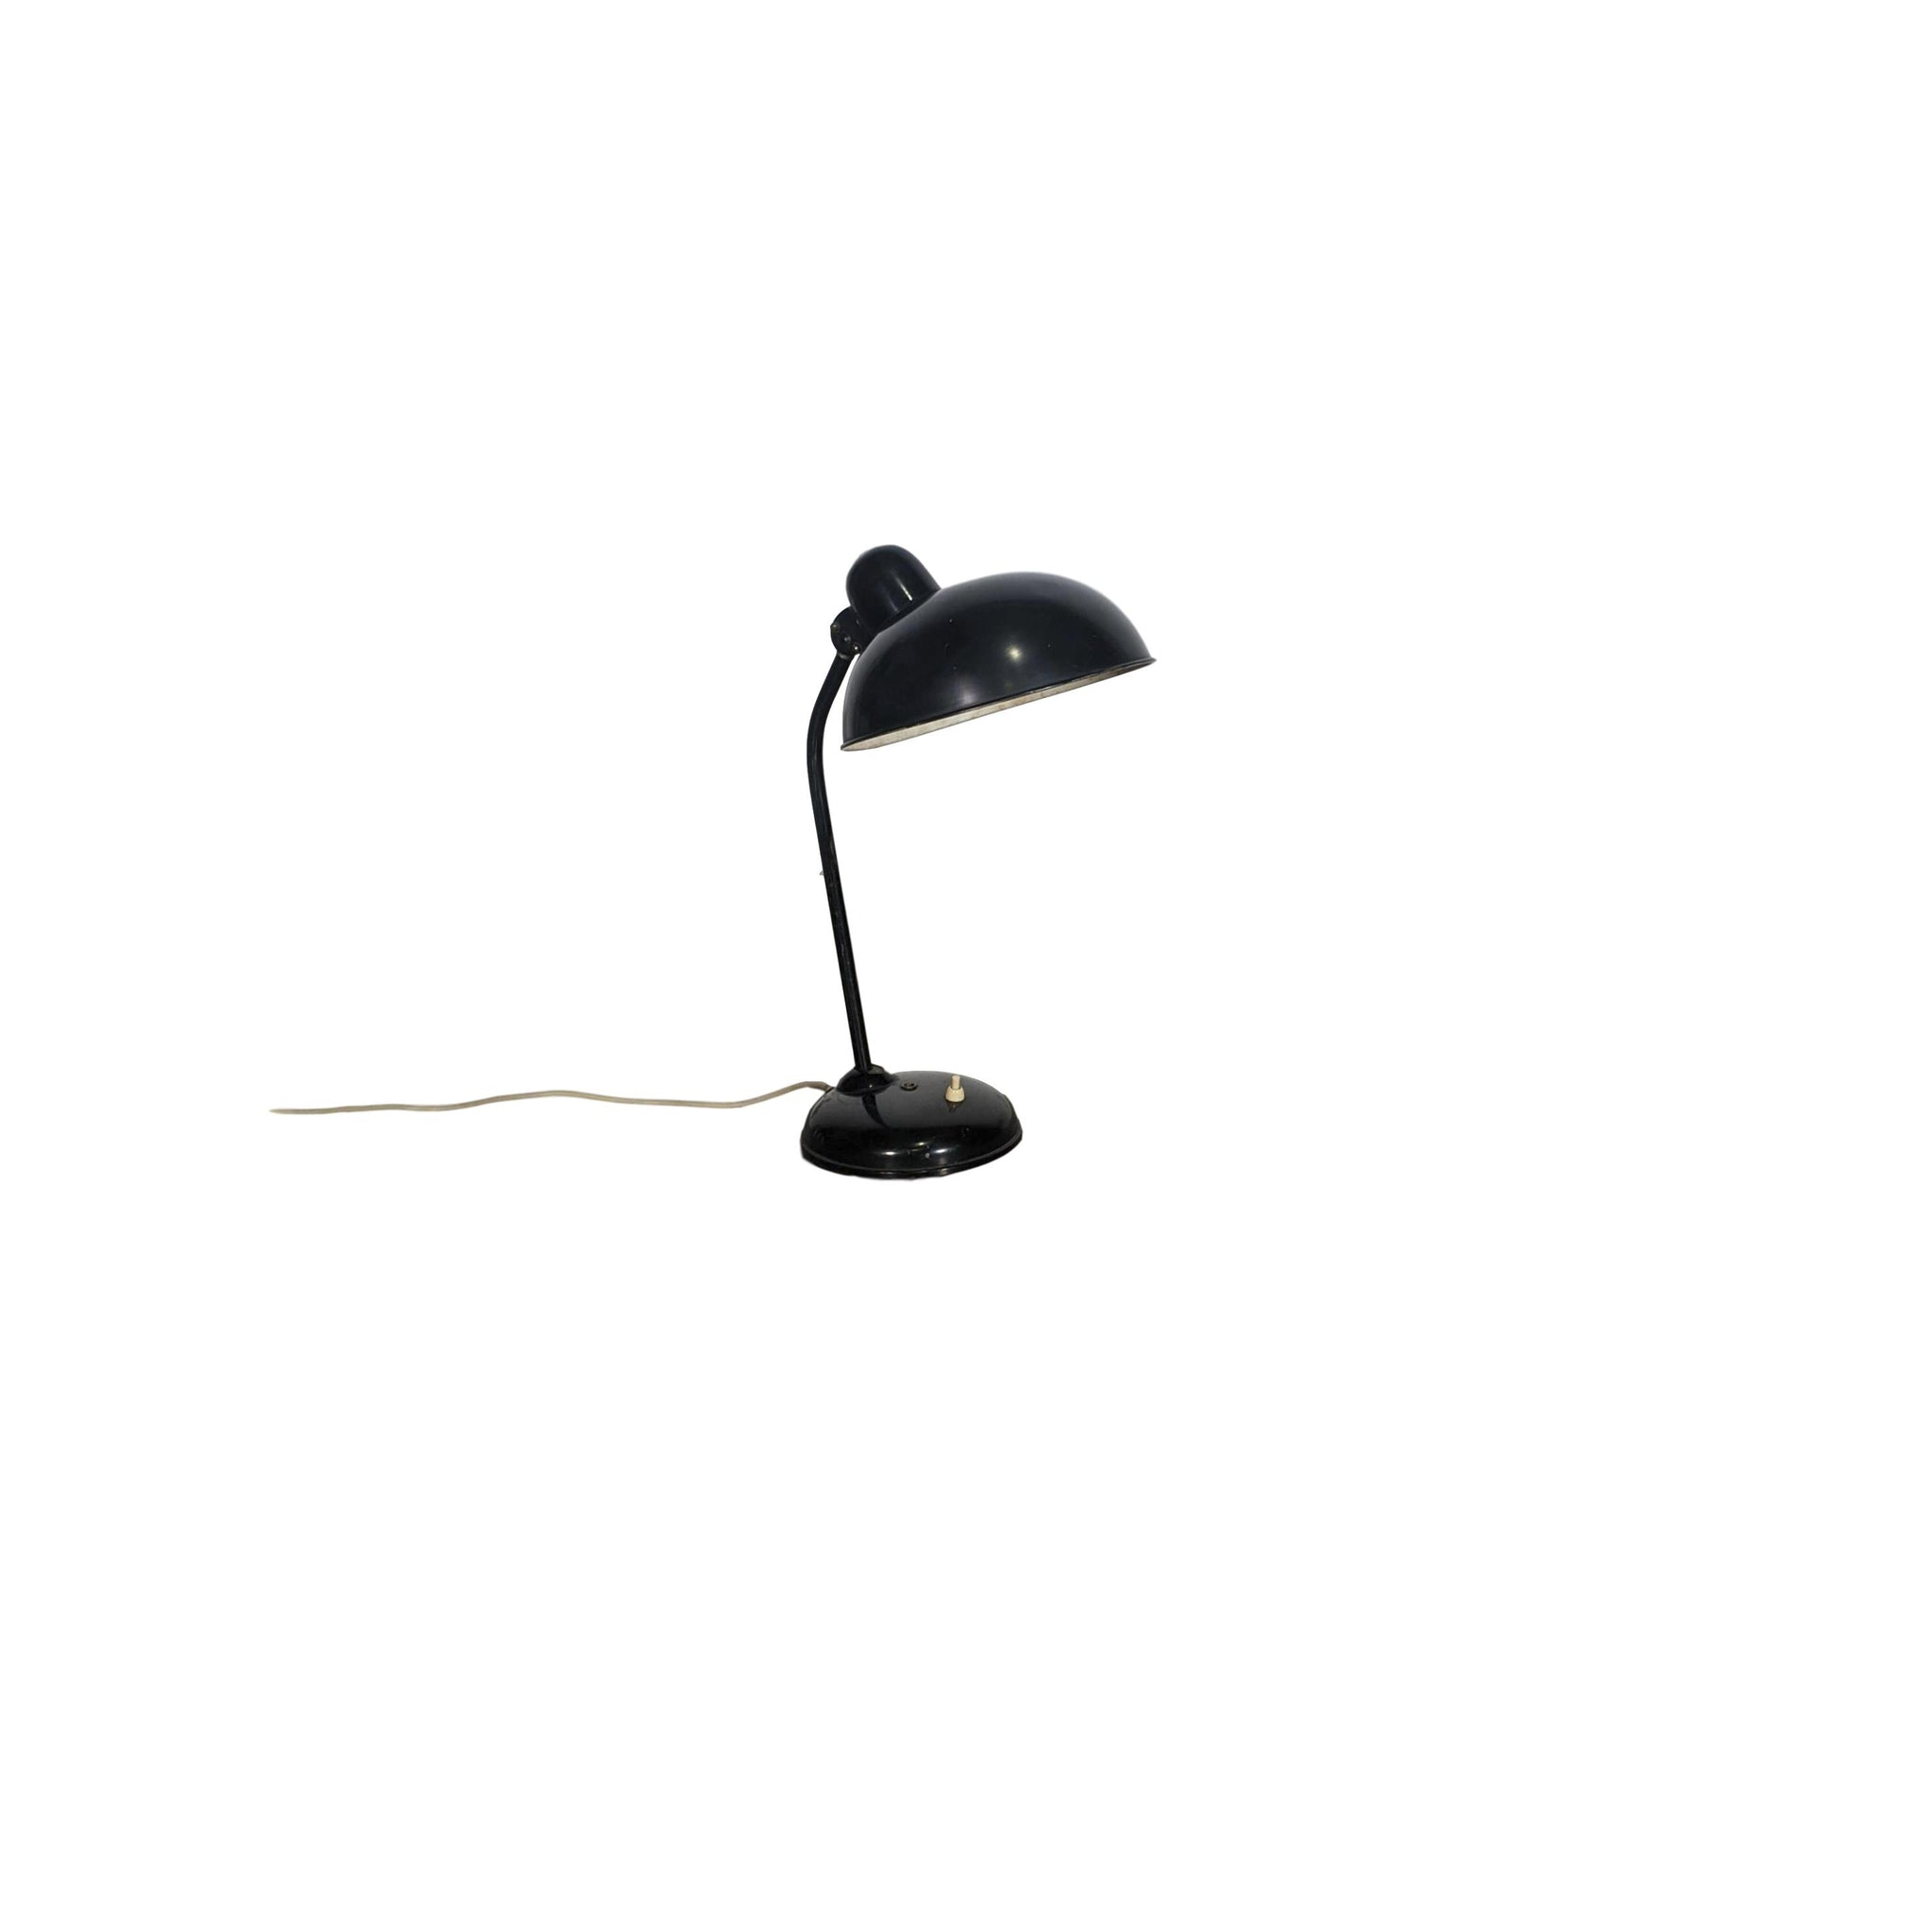 1950s Bauhaus Desk Lamp by Christian Dell for Helo Leuchten